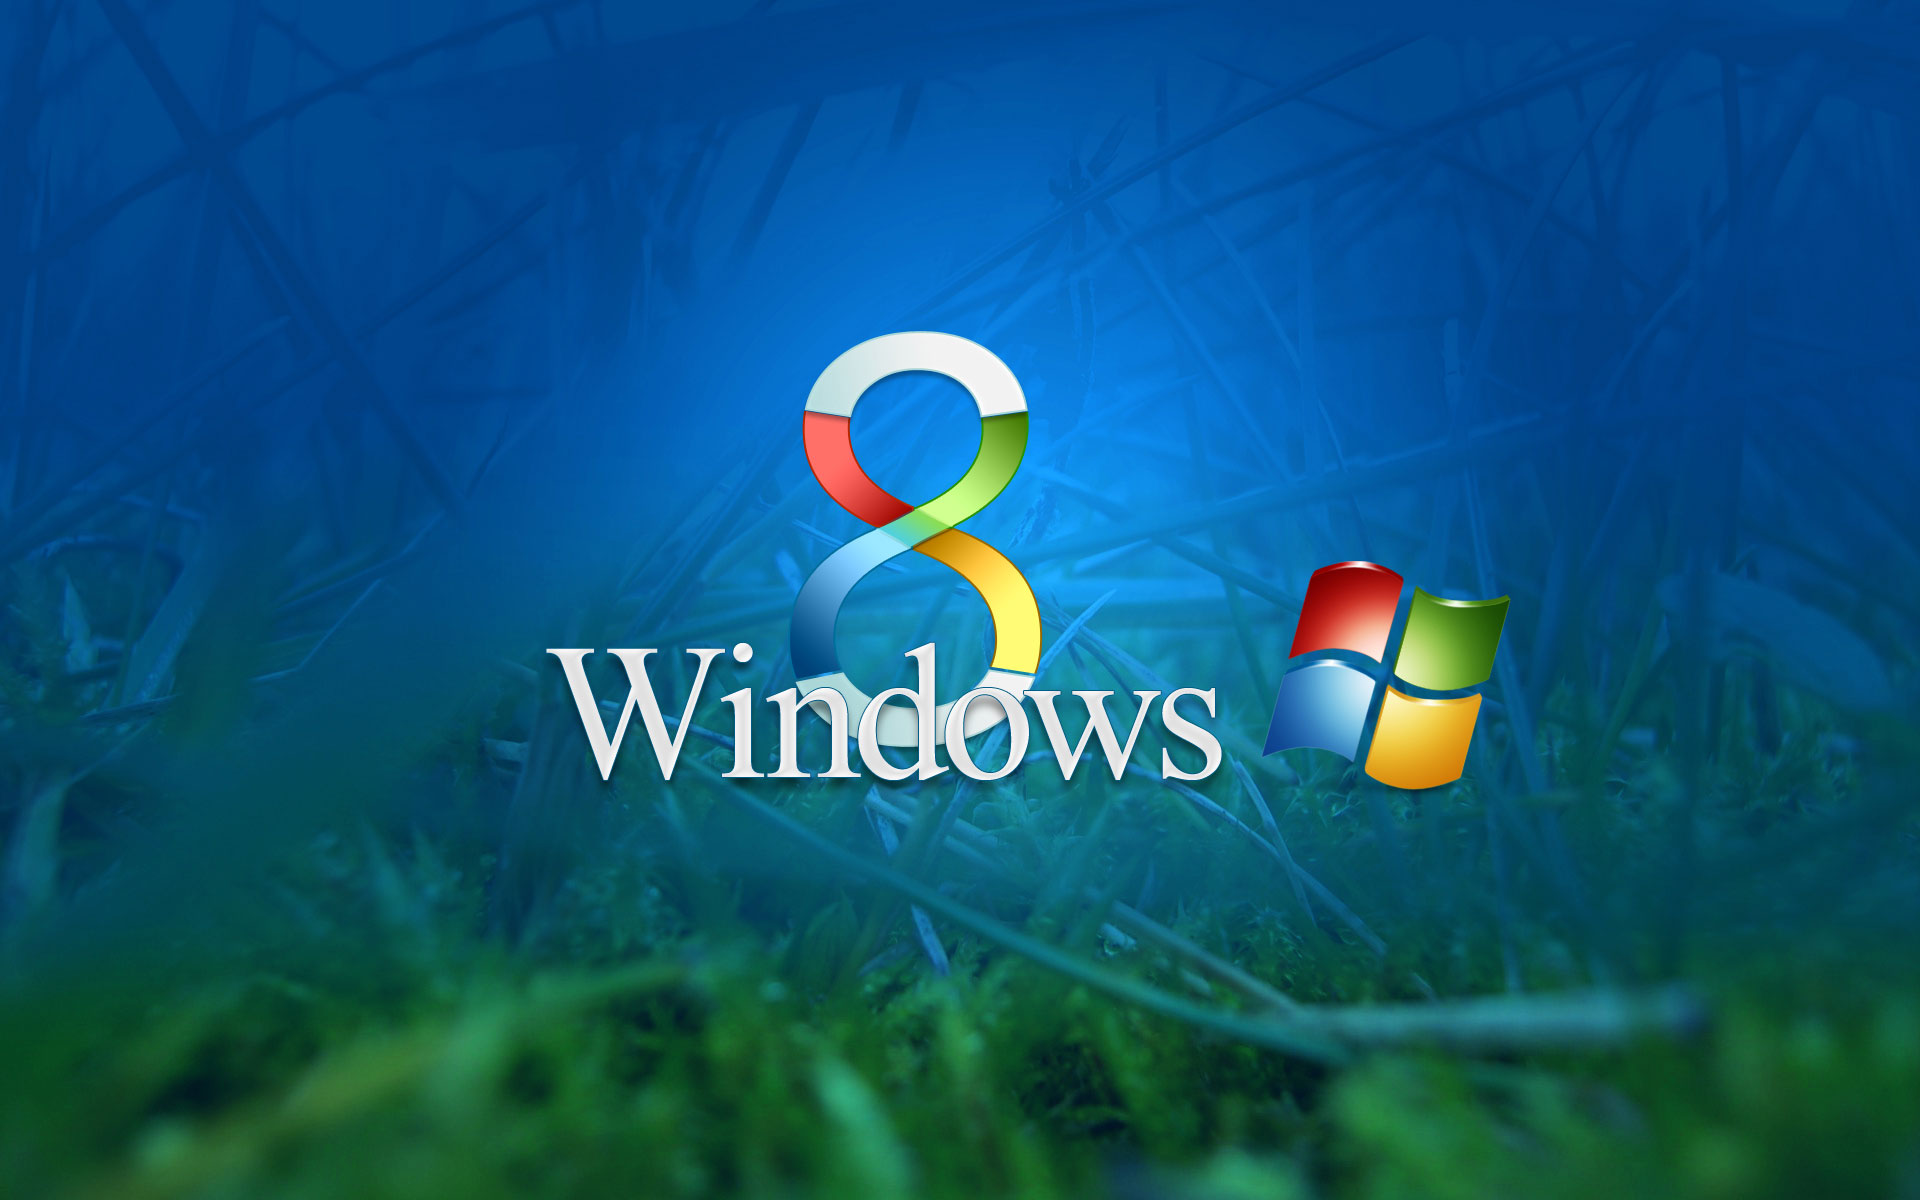 Windows 8 o Windows 7 con apariencia de Smartphone